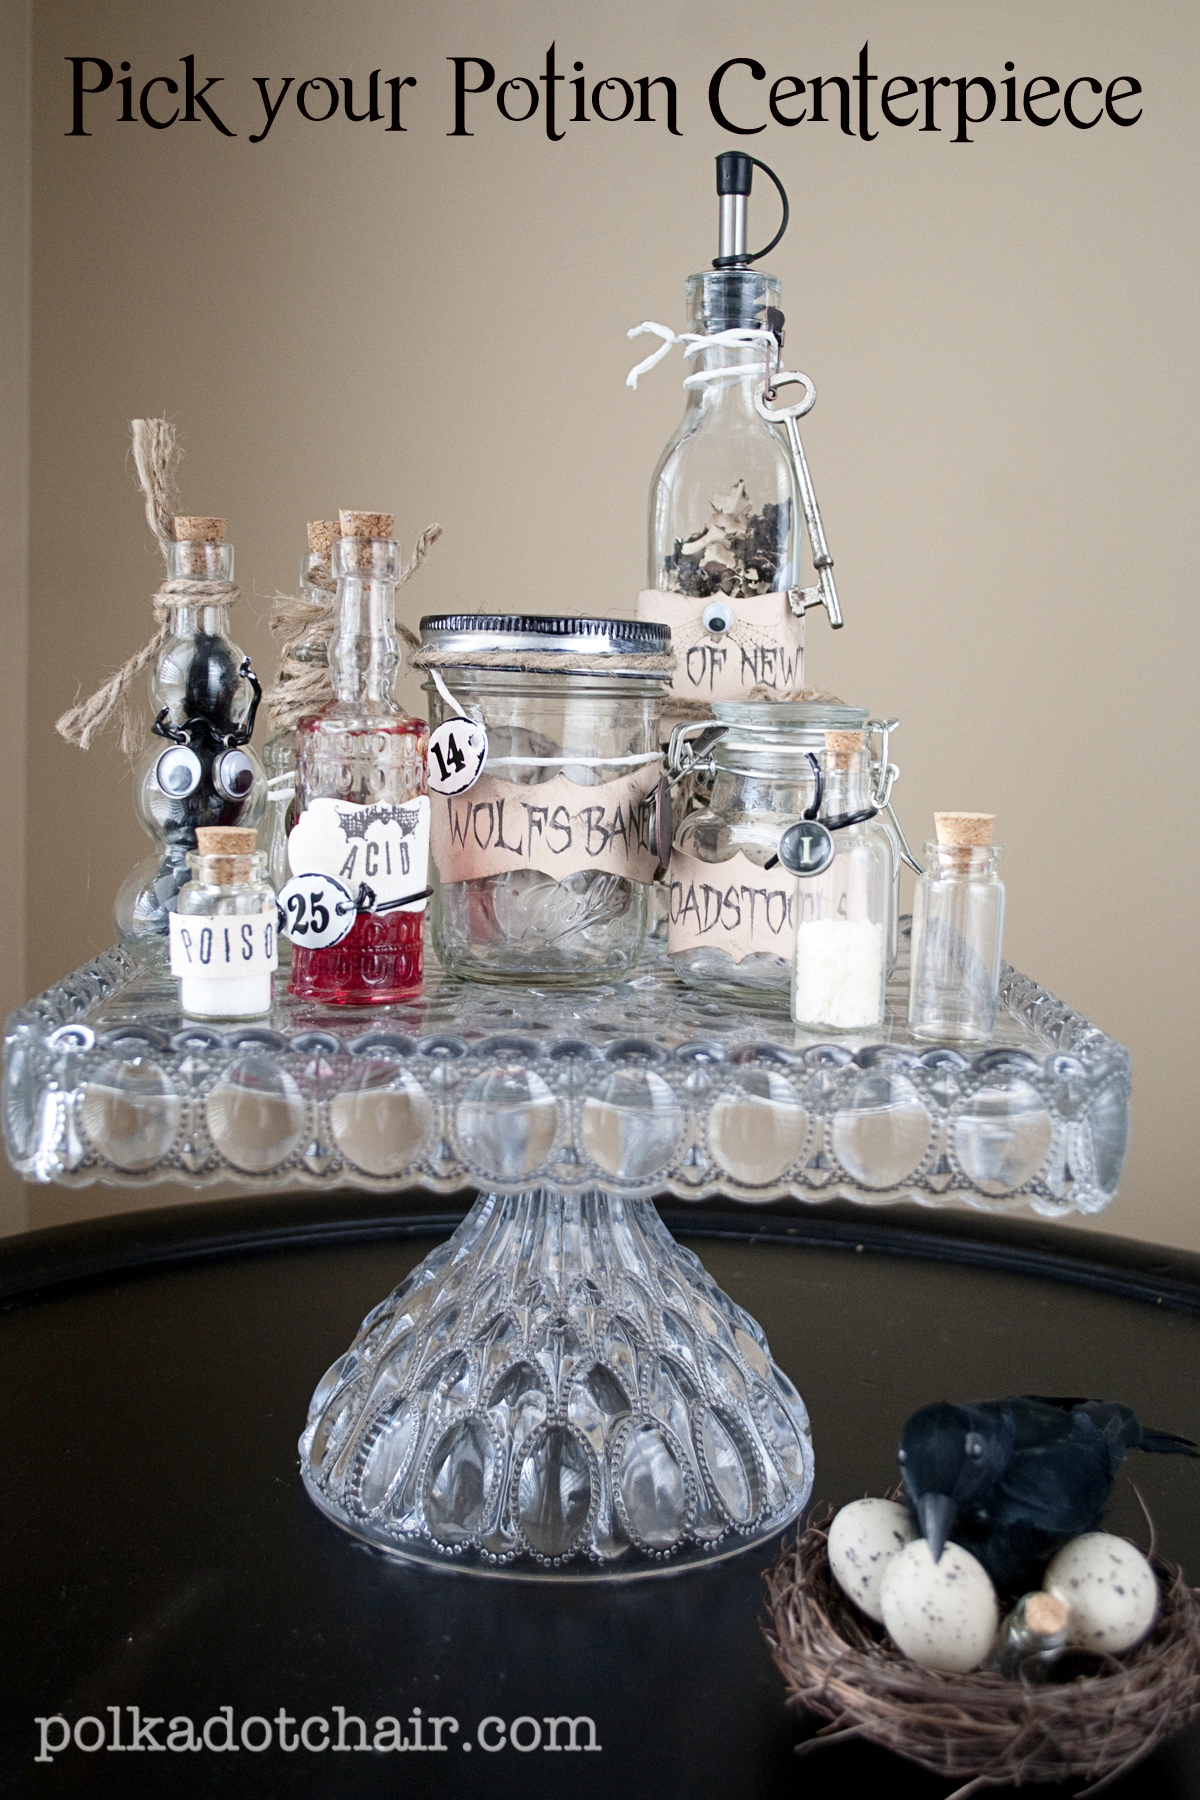 Pick your Potion Halloween Centerpiece The Polka Dot Chair